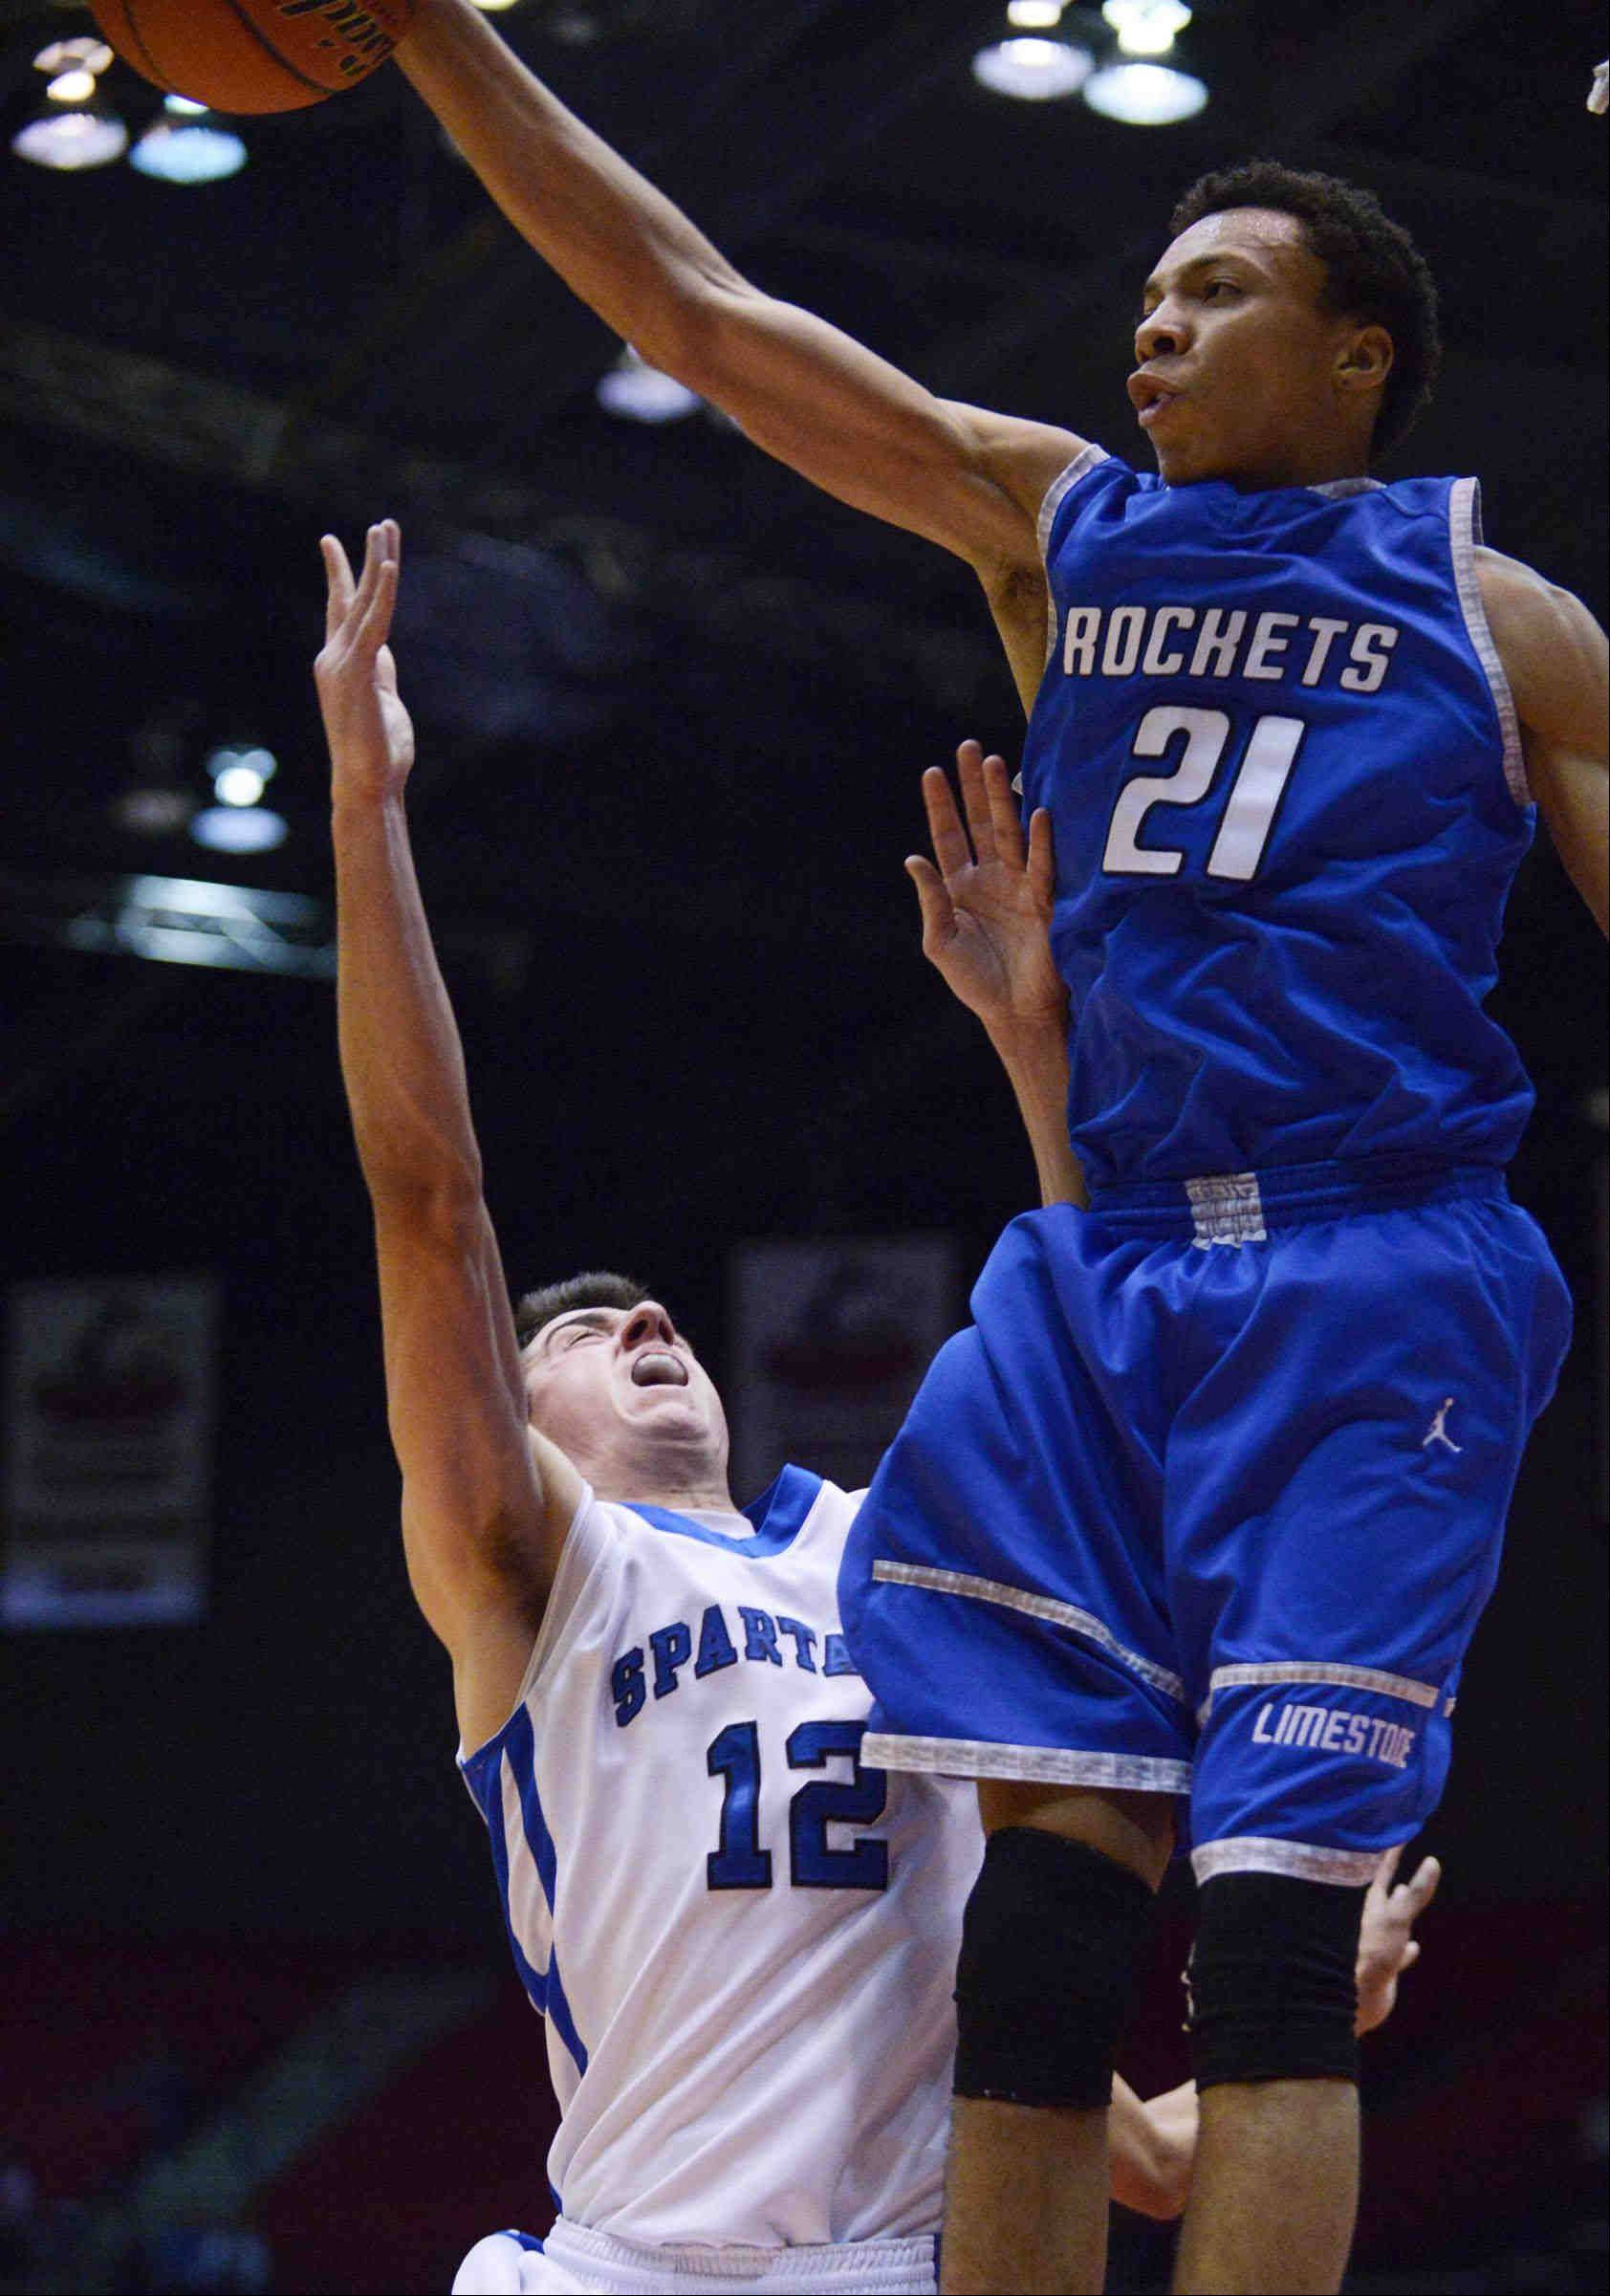 St. Francis' Tim Zettinger has a desperation shot blocked by Bartonville Limestone's David Anderson Tuesday in the 3A Dekalb supersectional game at the Northern Illinois Convocation Center.